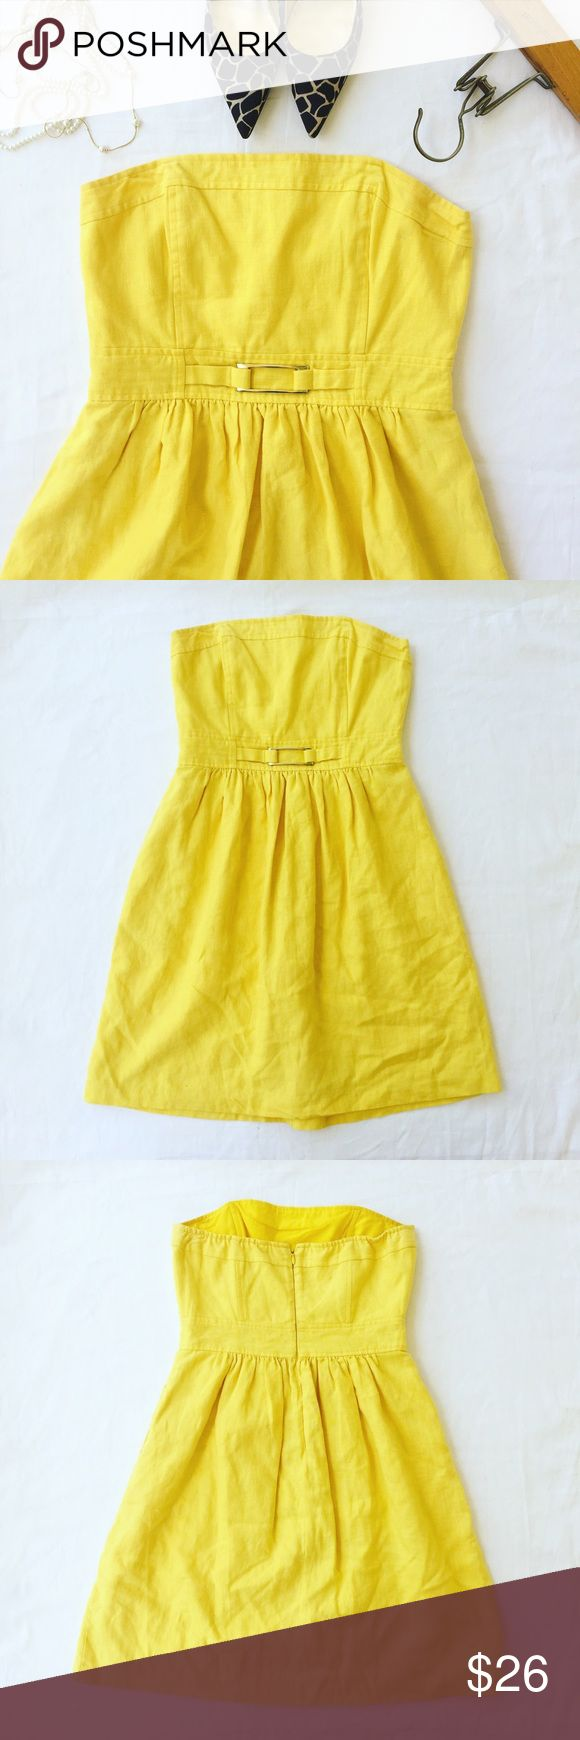 Banana Republic | Linen Sundress Sunshine Yellow Sunshine yellow Strapless Banana Republic dress in size 8. Linen and cotton blended fabric. Clear rubber lining top to prevent slipping. Boning in Top for shaping and fit. Gold colored metal detail on waist. Zipper closure in back. Cotton lining inside of dress. Dress falls just above the knee. Like new condition, ready to ship next business day! Banana Republic Dresses Strapless